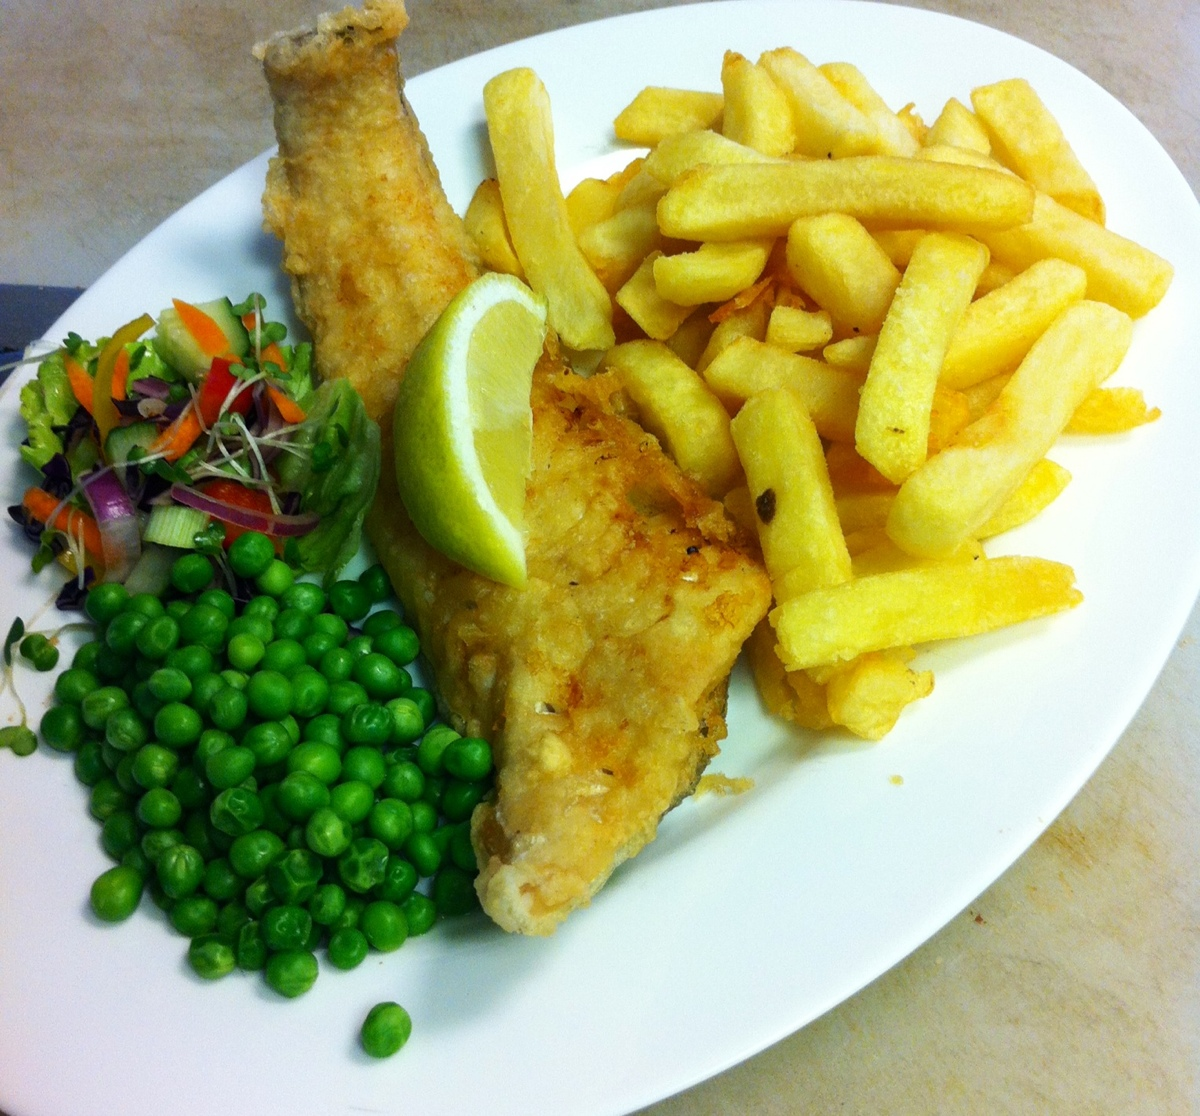 Fresh Cod & Chips in our Homemade Batter